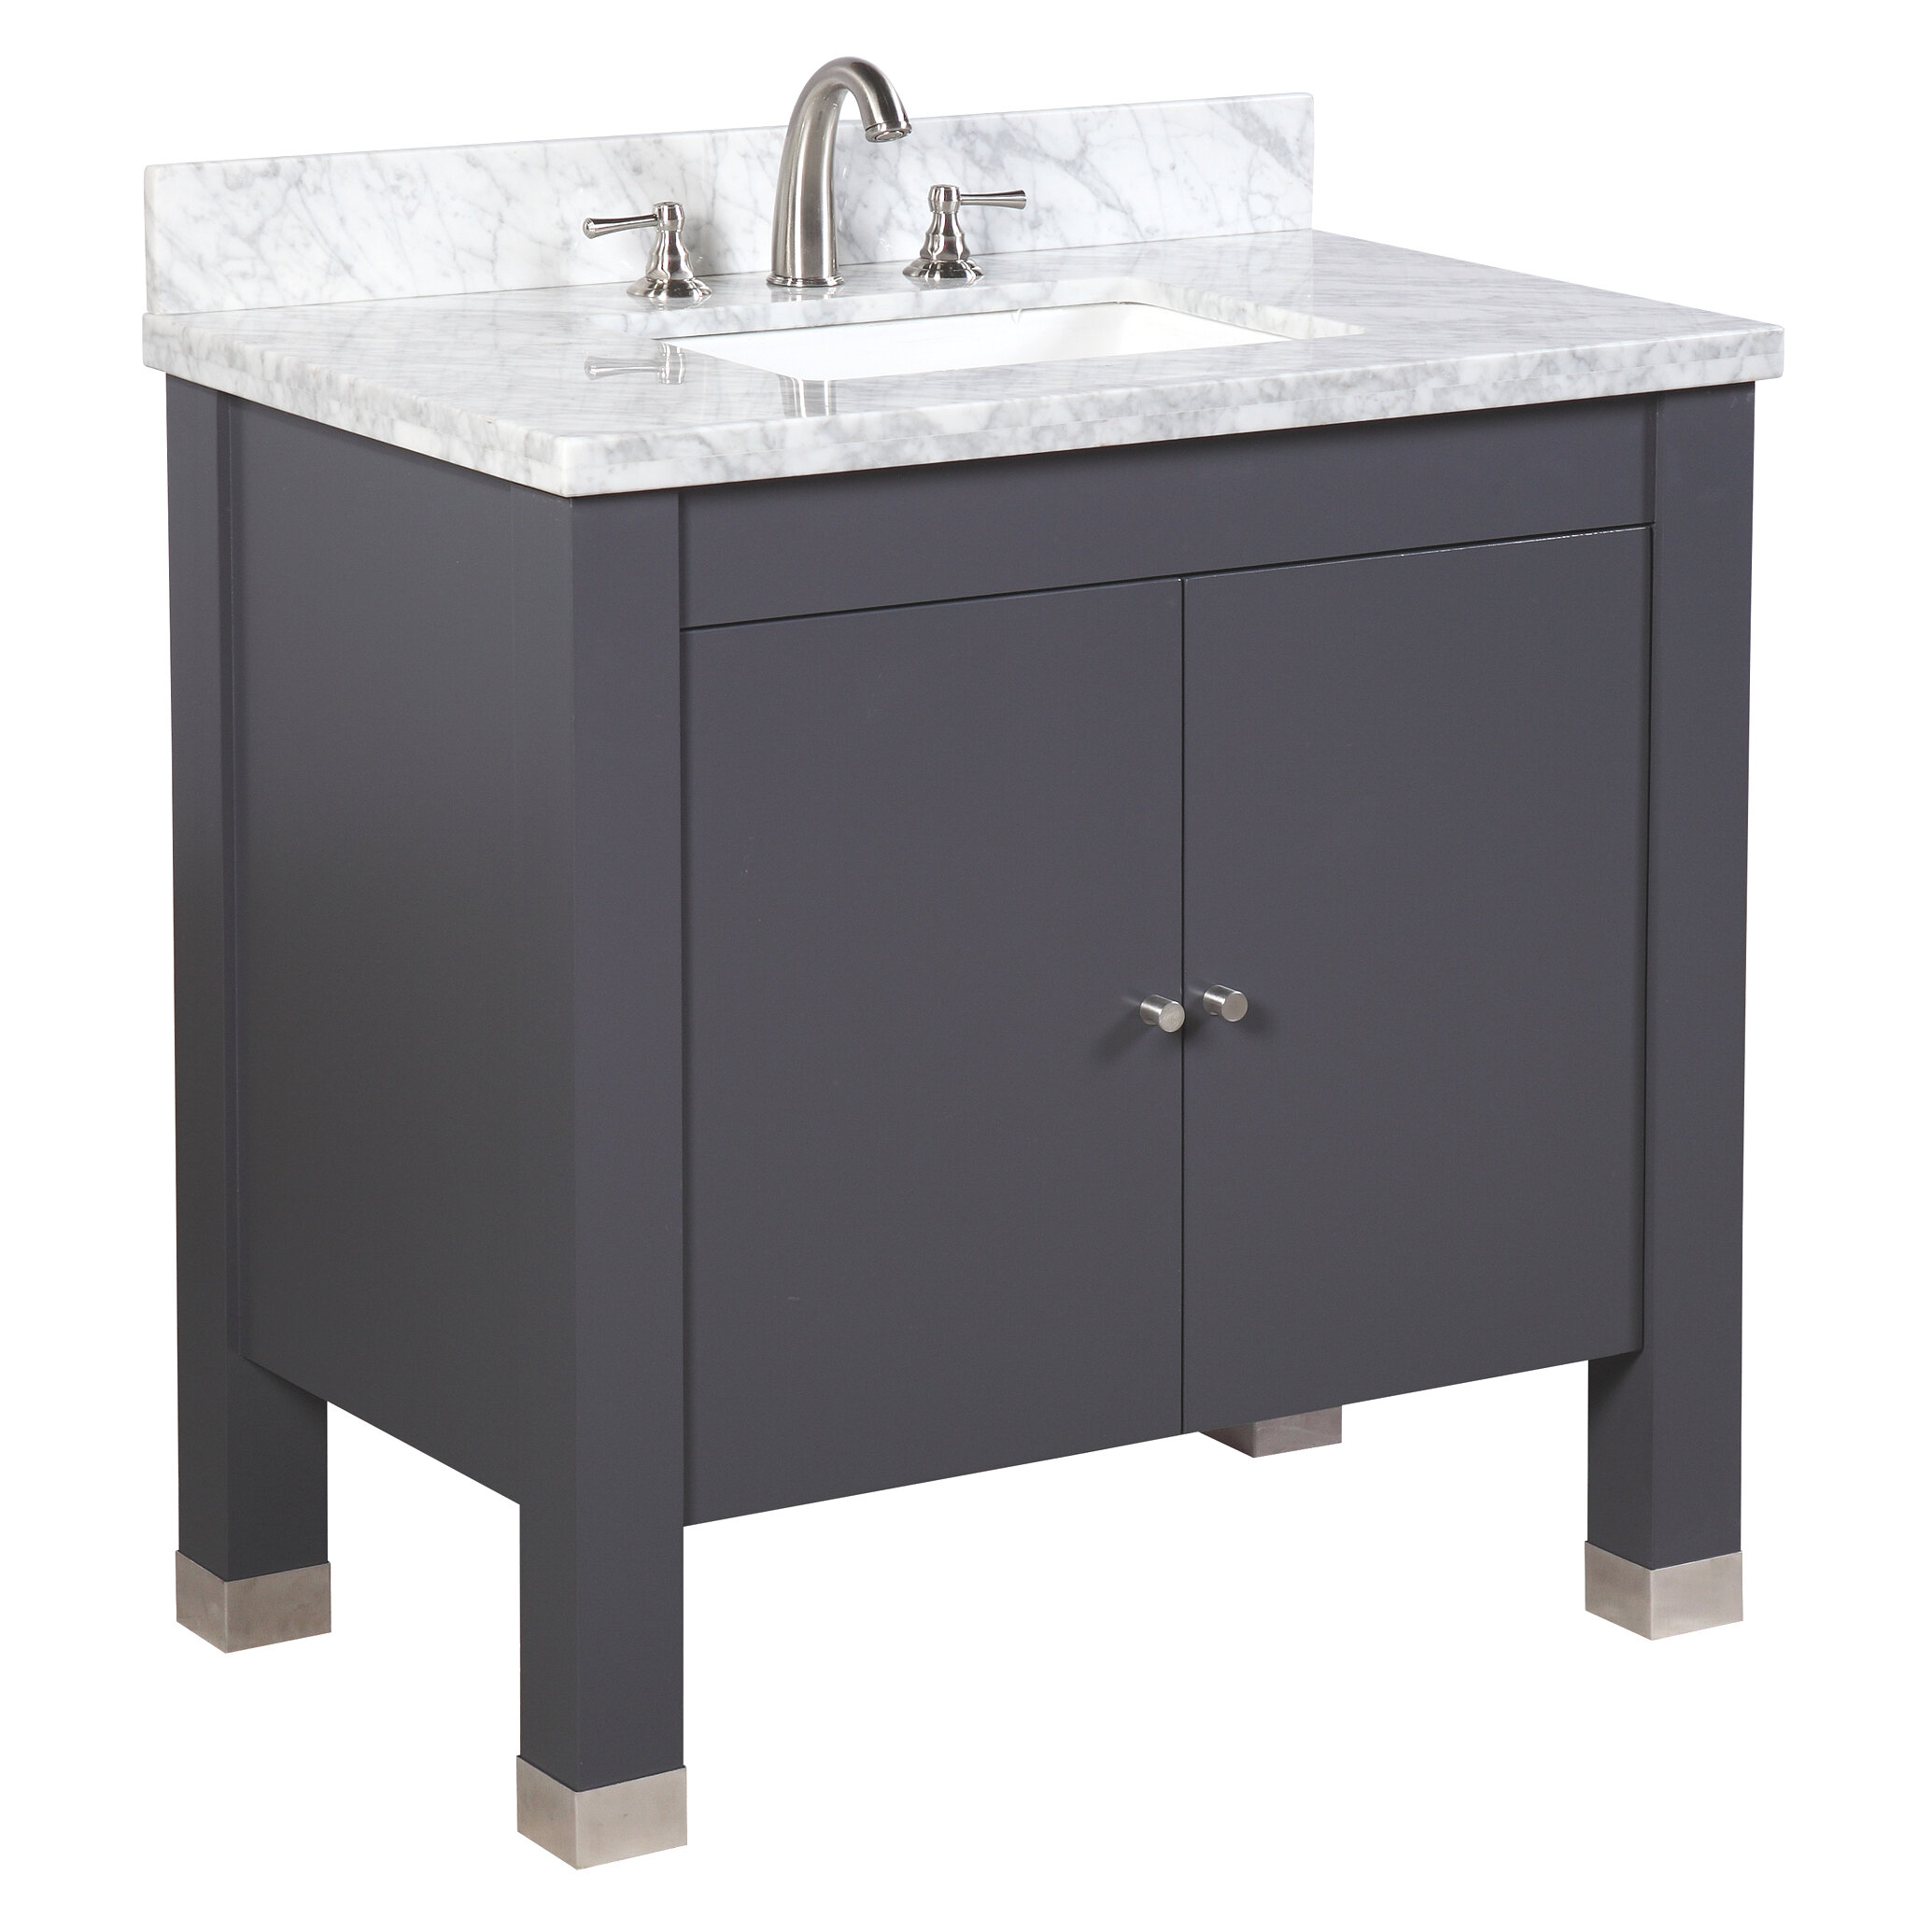 beneficial plenty mirror luxury decoration ideas decorating frames vanity in bathroom contemporary sink wall for gray bathrooom mounted are furniture tips there of rectangle palatial woodworking double twencent your over